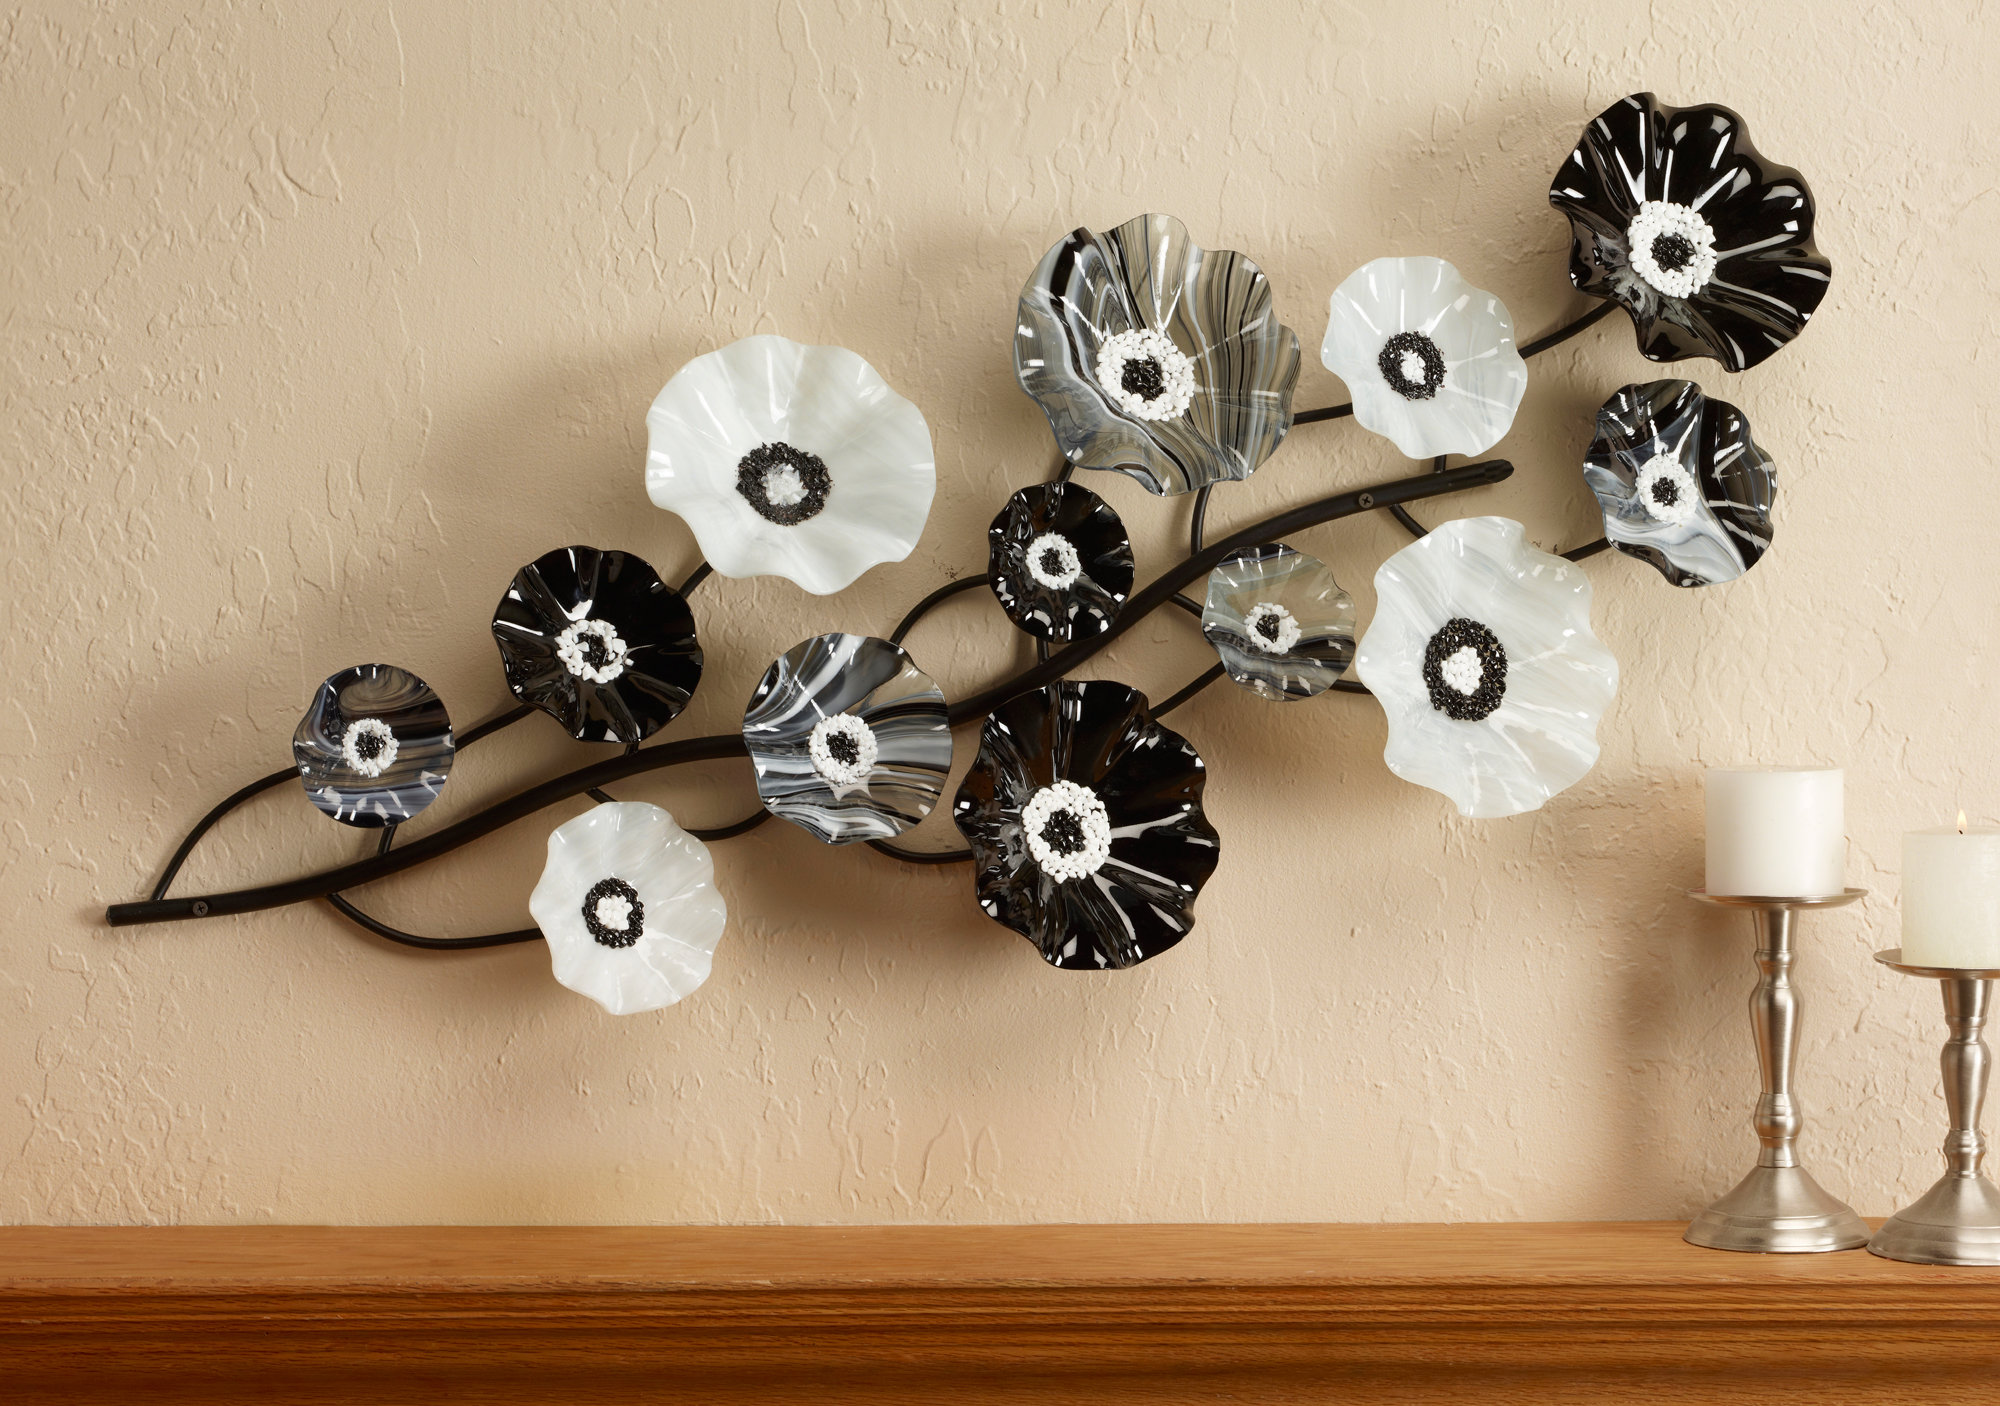 Black white wall vine by scott johnson and shawn johnson art glass wall sculpture artful home - Sculpture wall decor ...